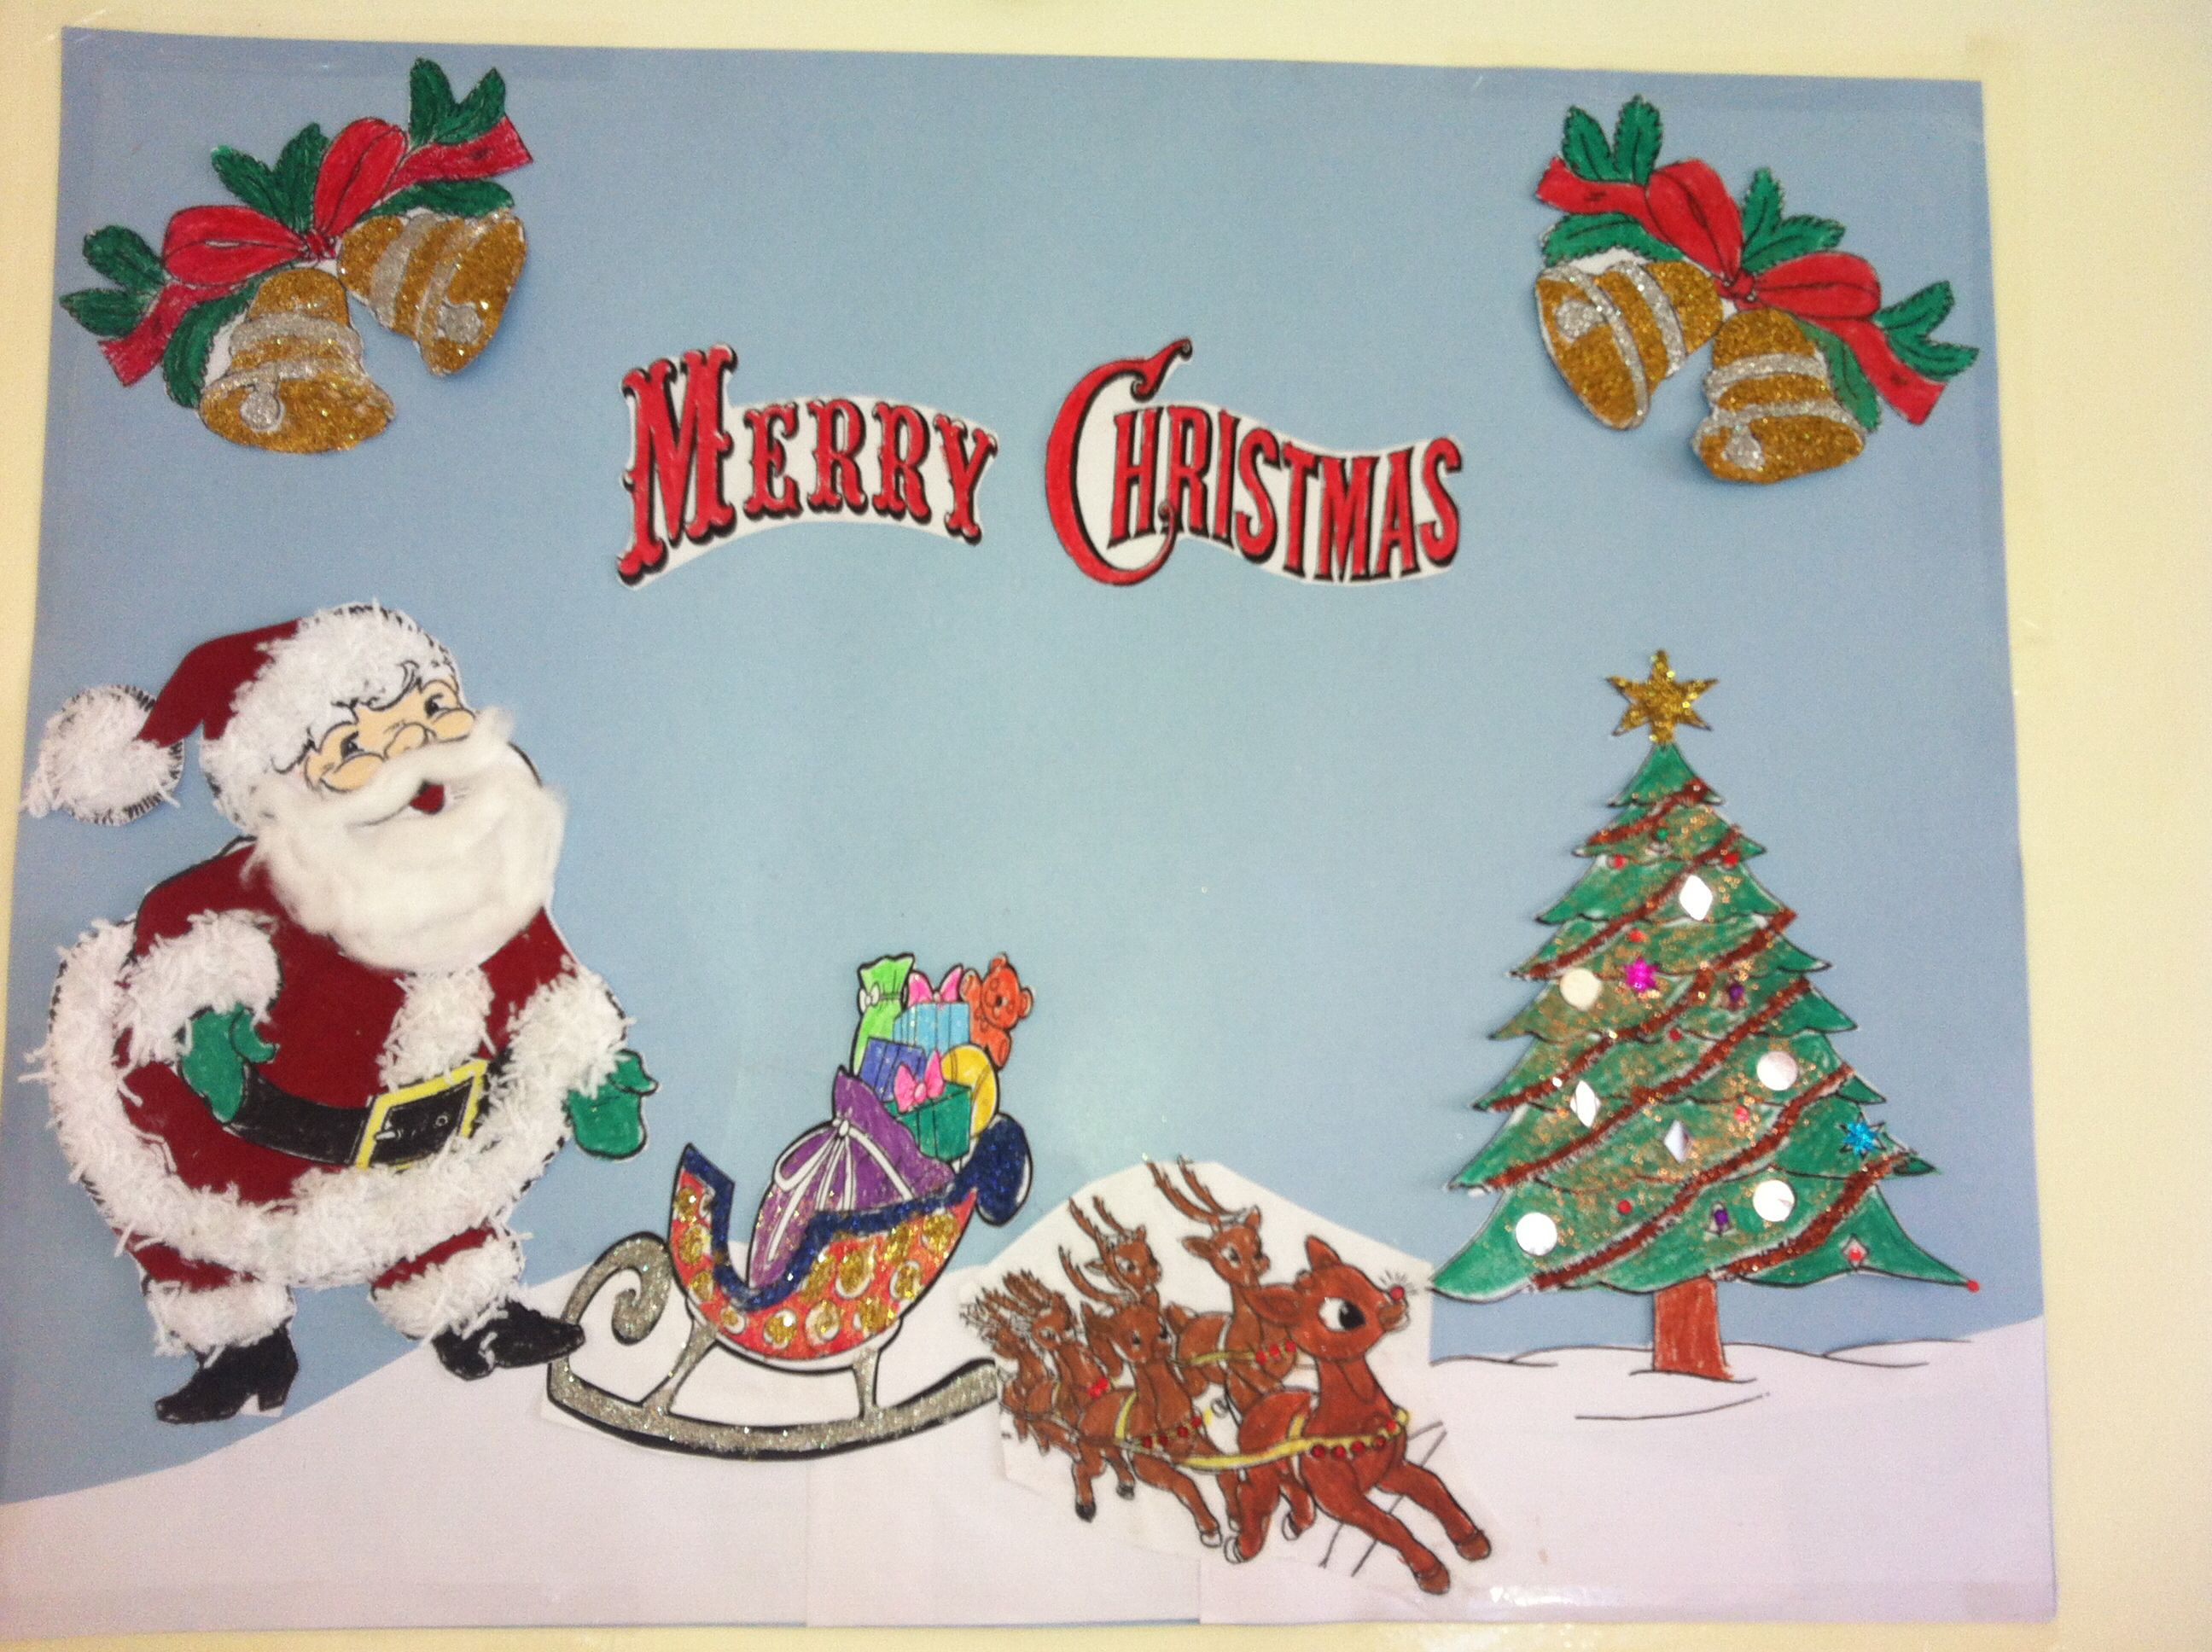 Poster design ideas for school projects - Explore School Projects Merry Christmas And More